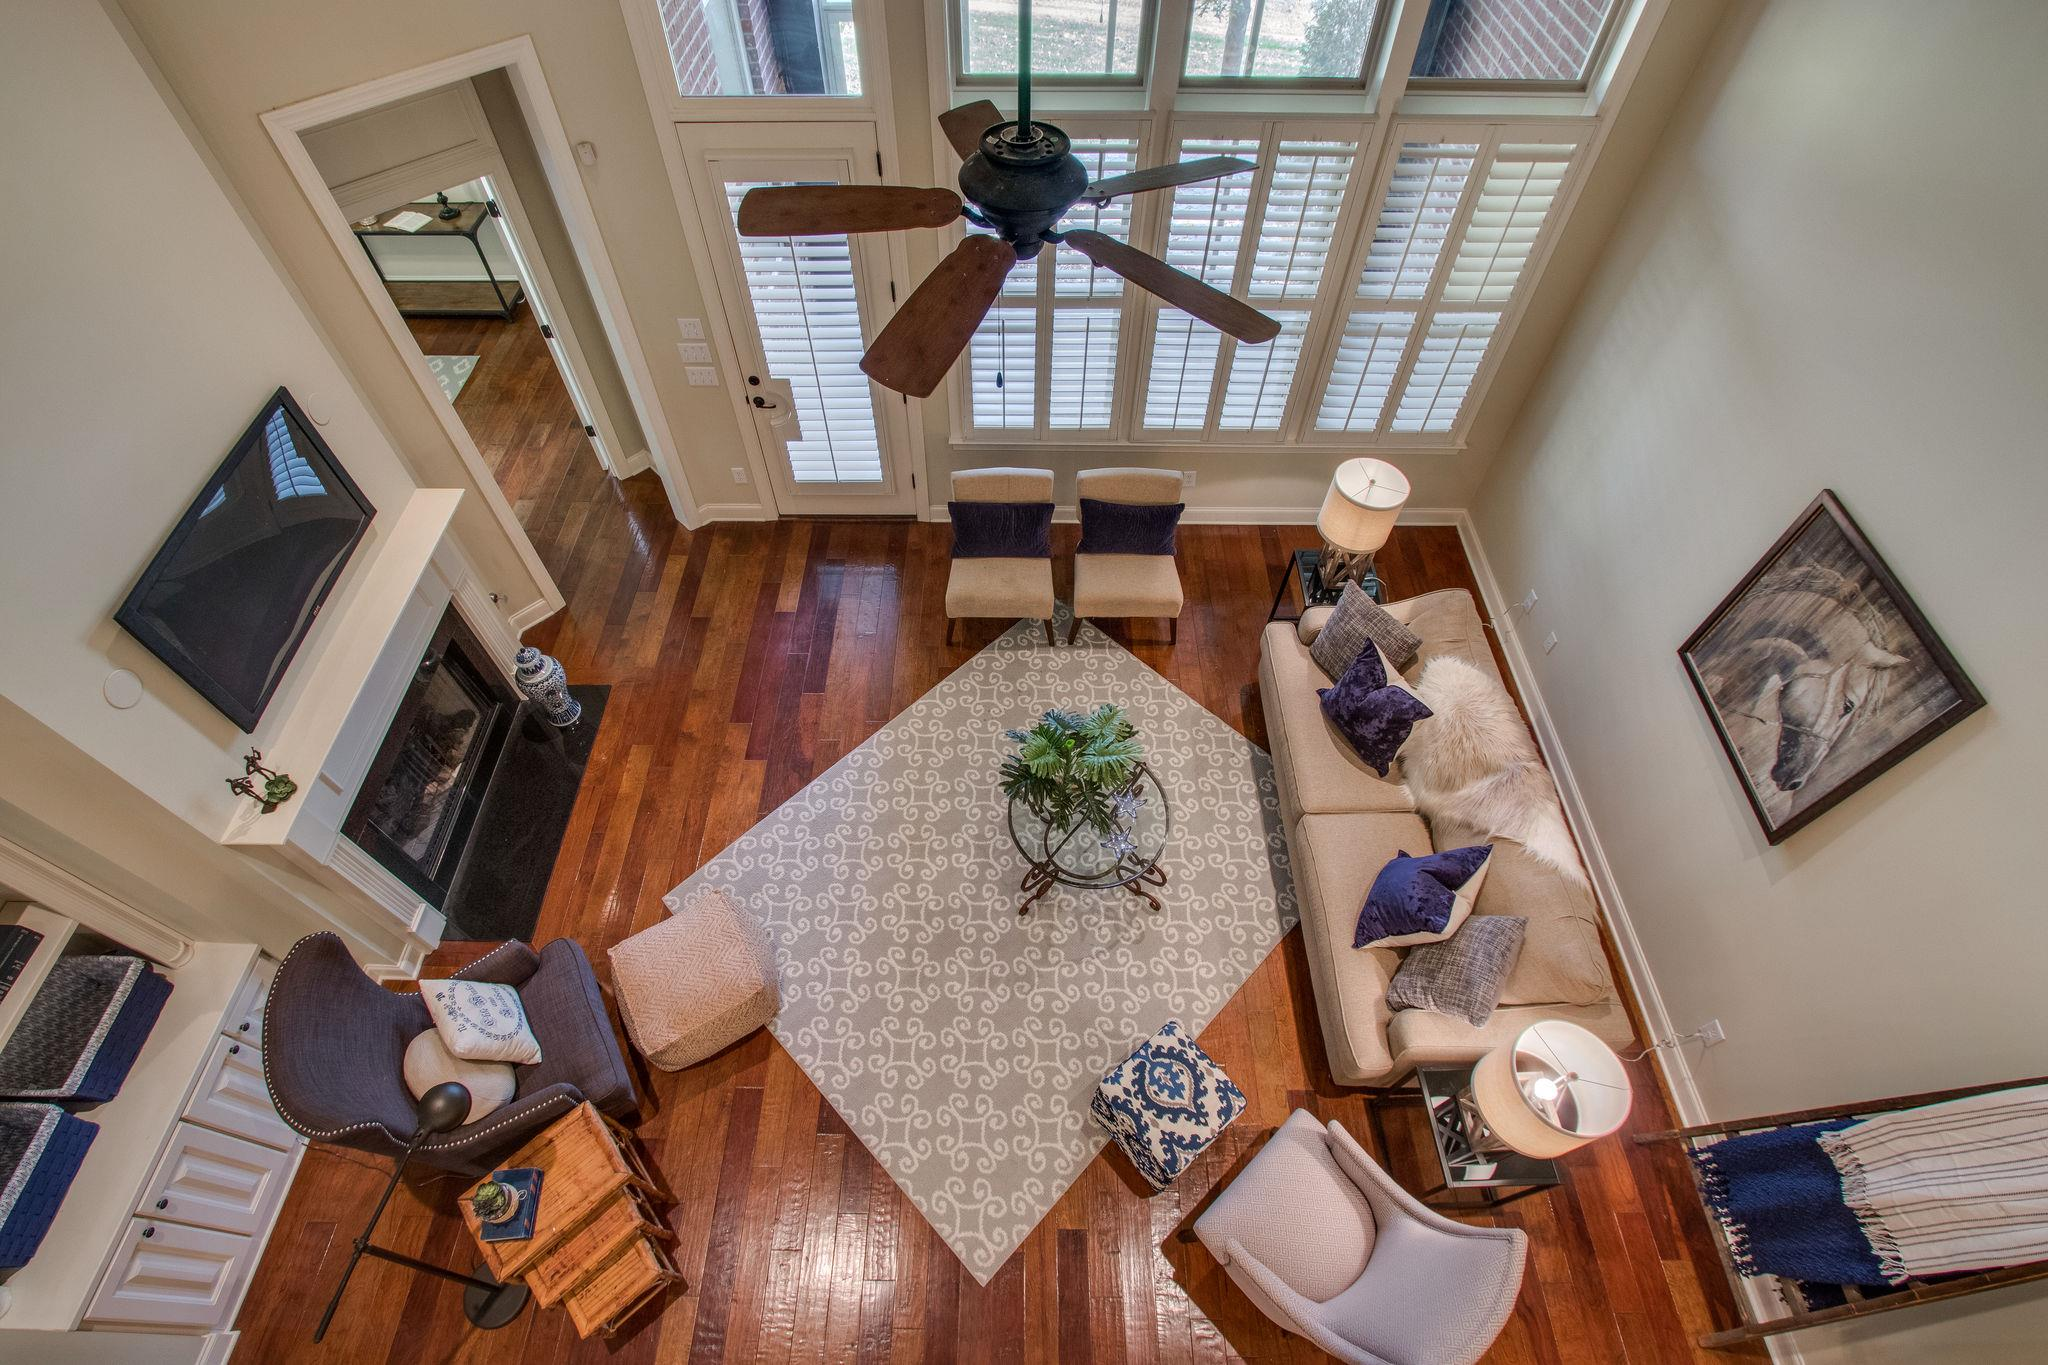 103 Village Cir #2, one of homes for sale in Lebanon